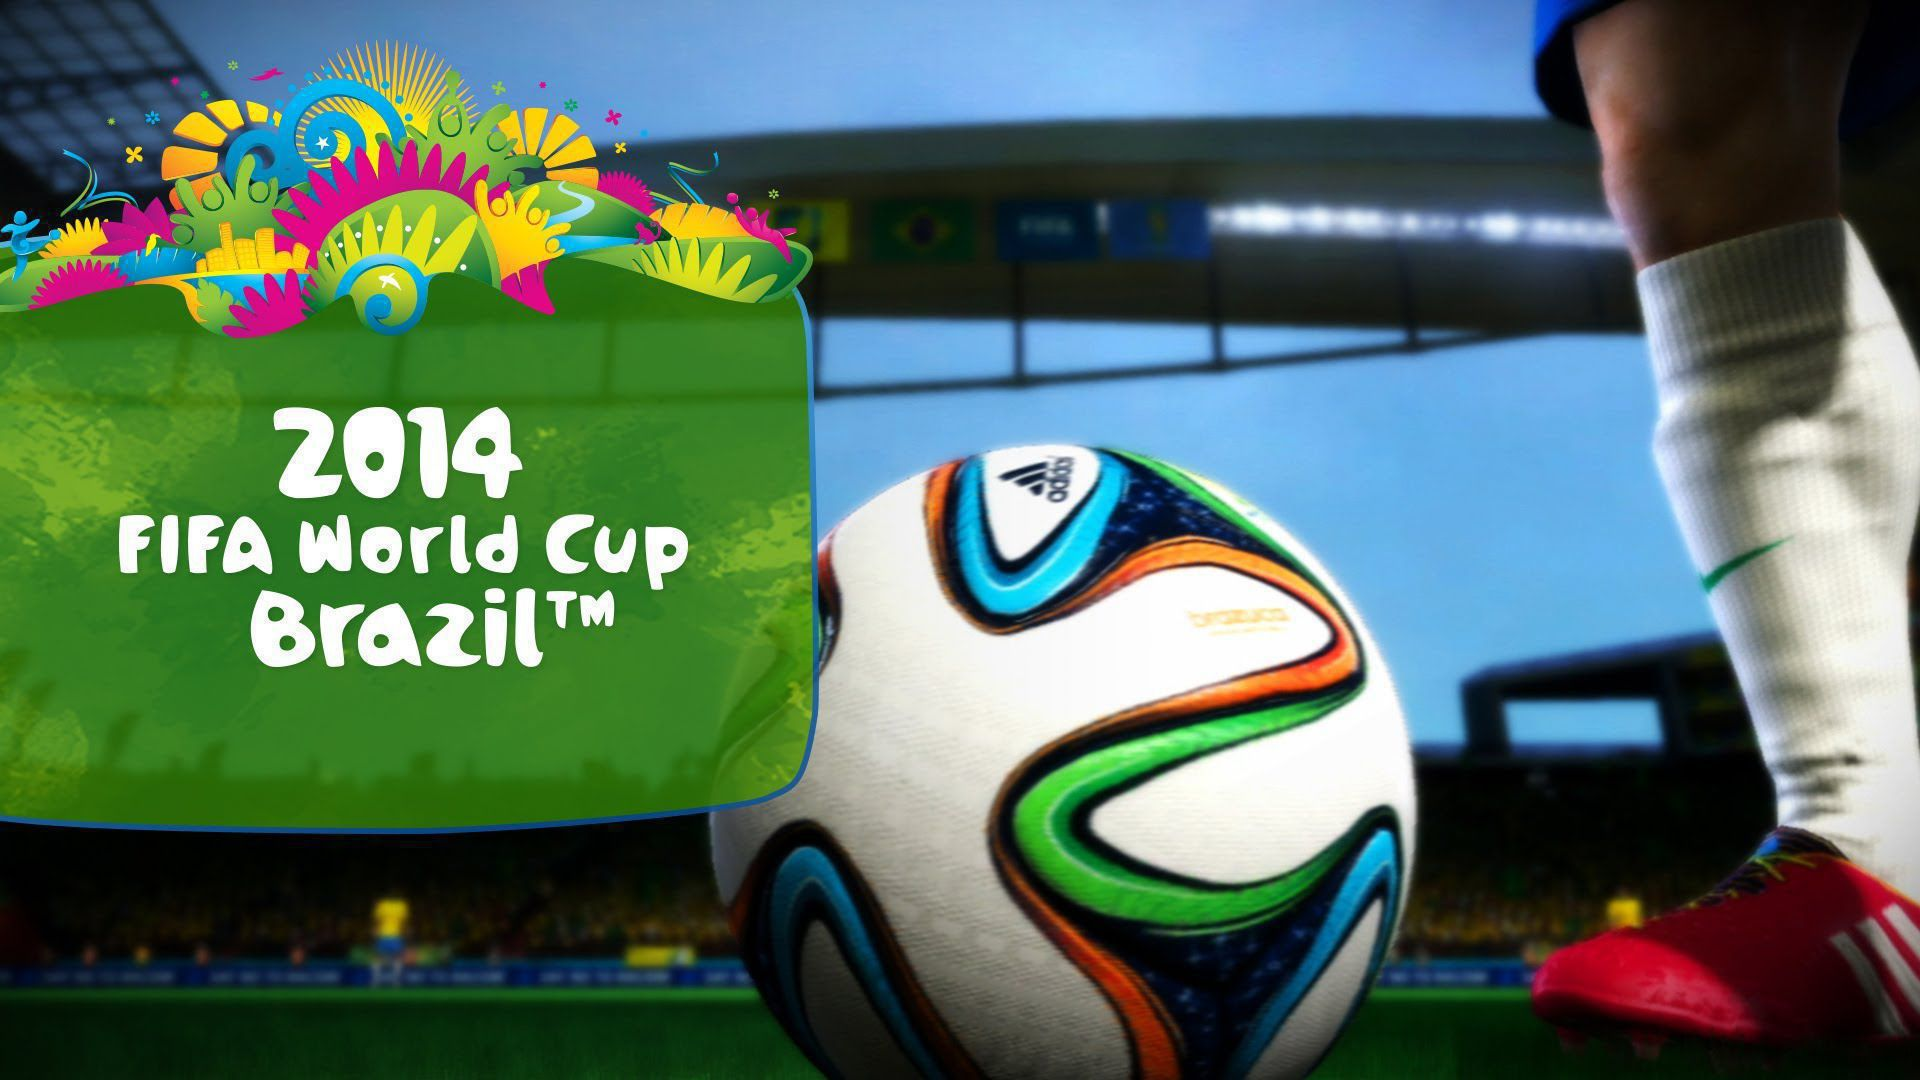 Brazil World Cup 2014 Gallery